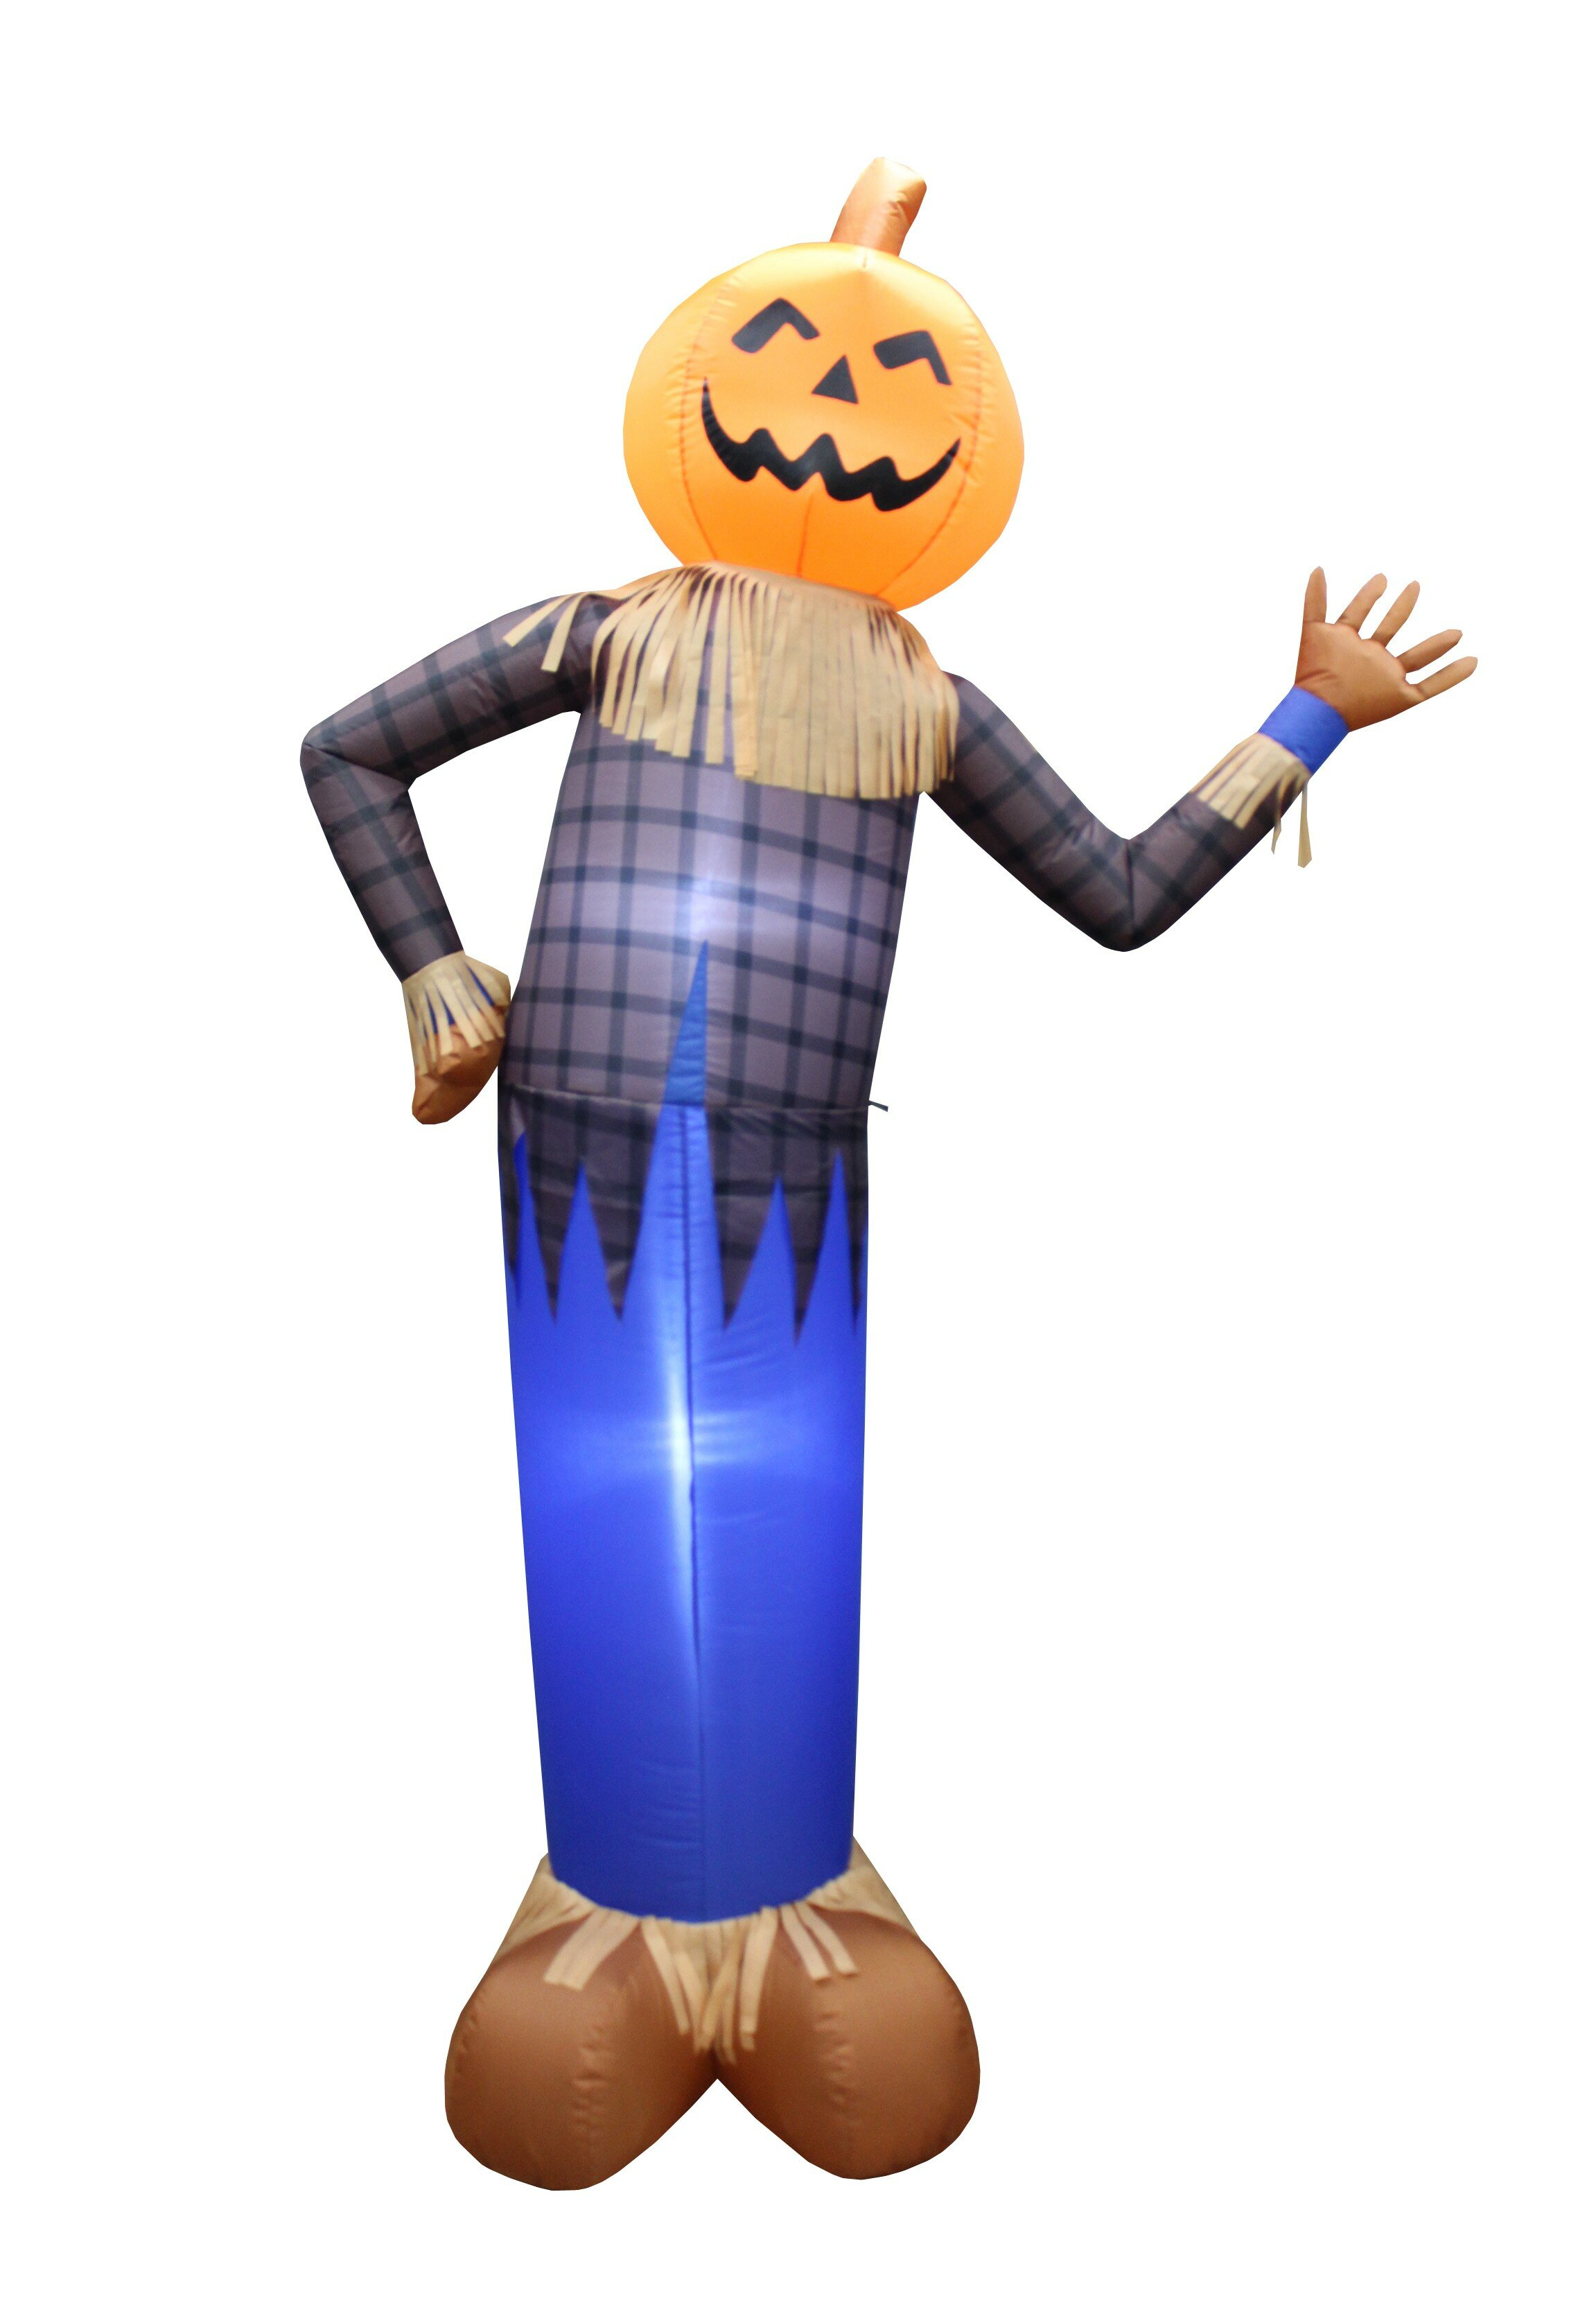 6 Foot Tall Scarecrow with Pumpkin Head Yard Decoration Inflatable